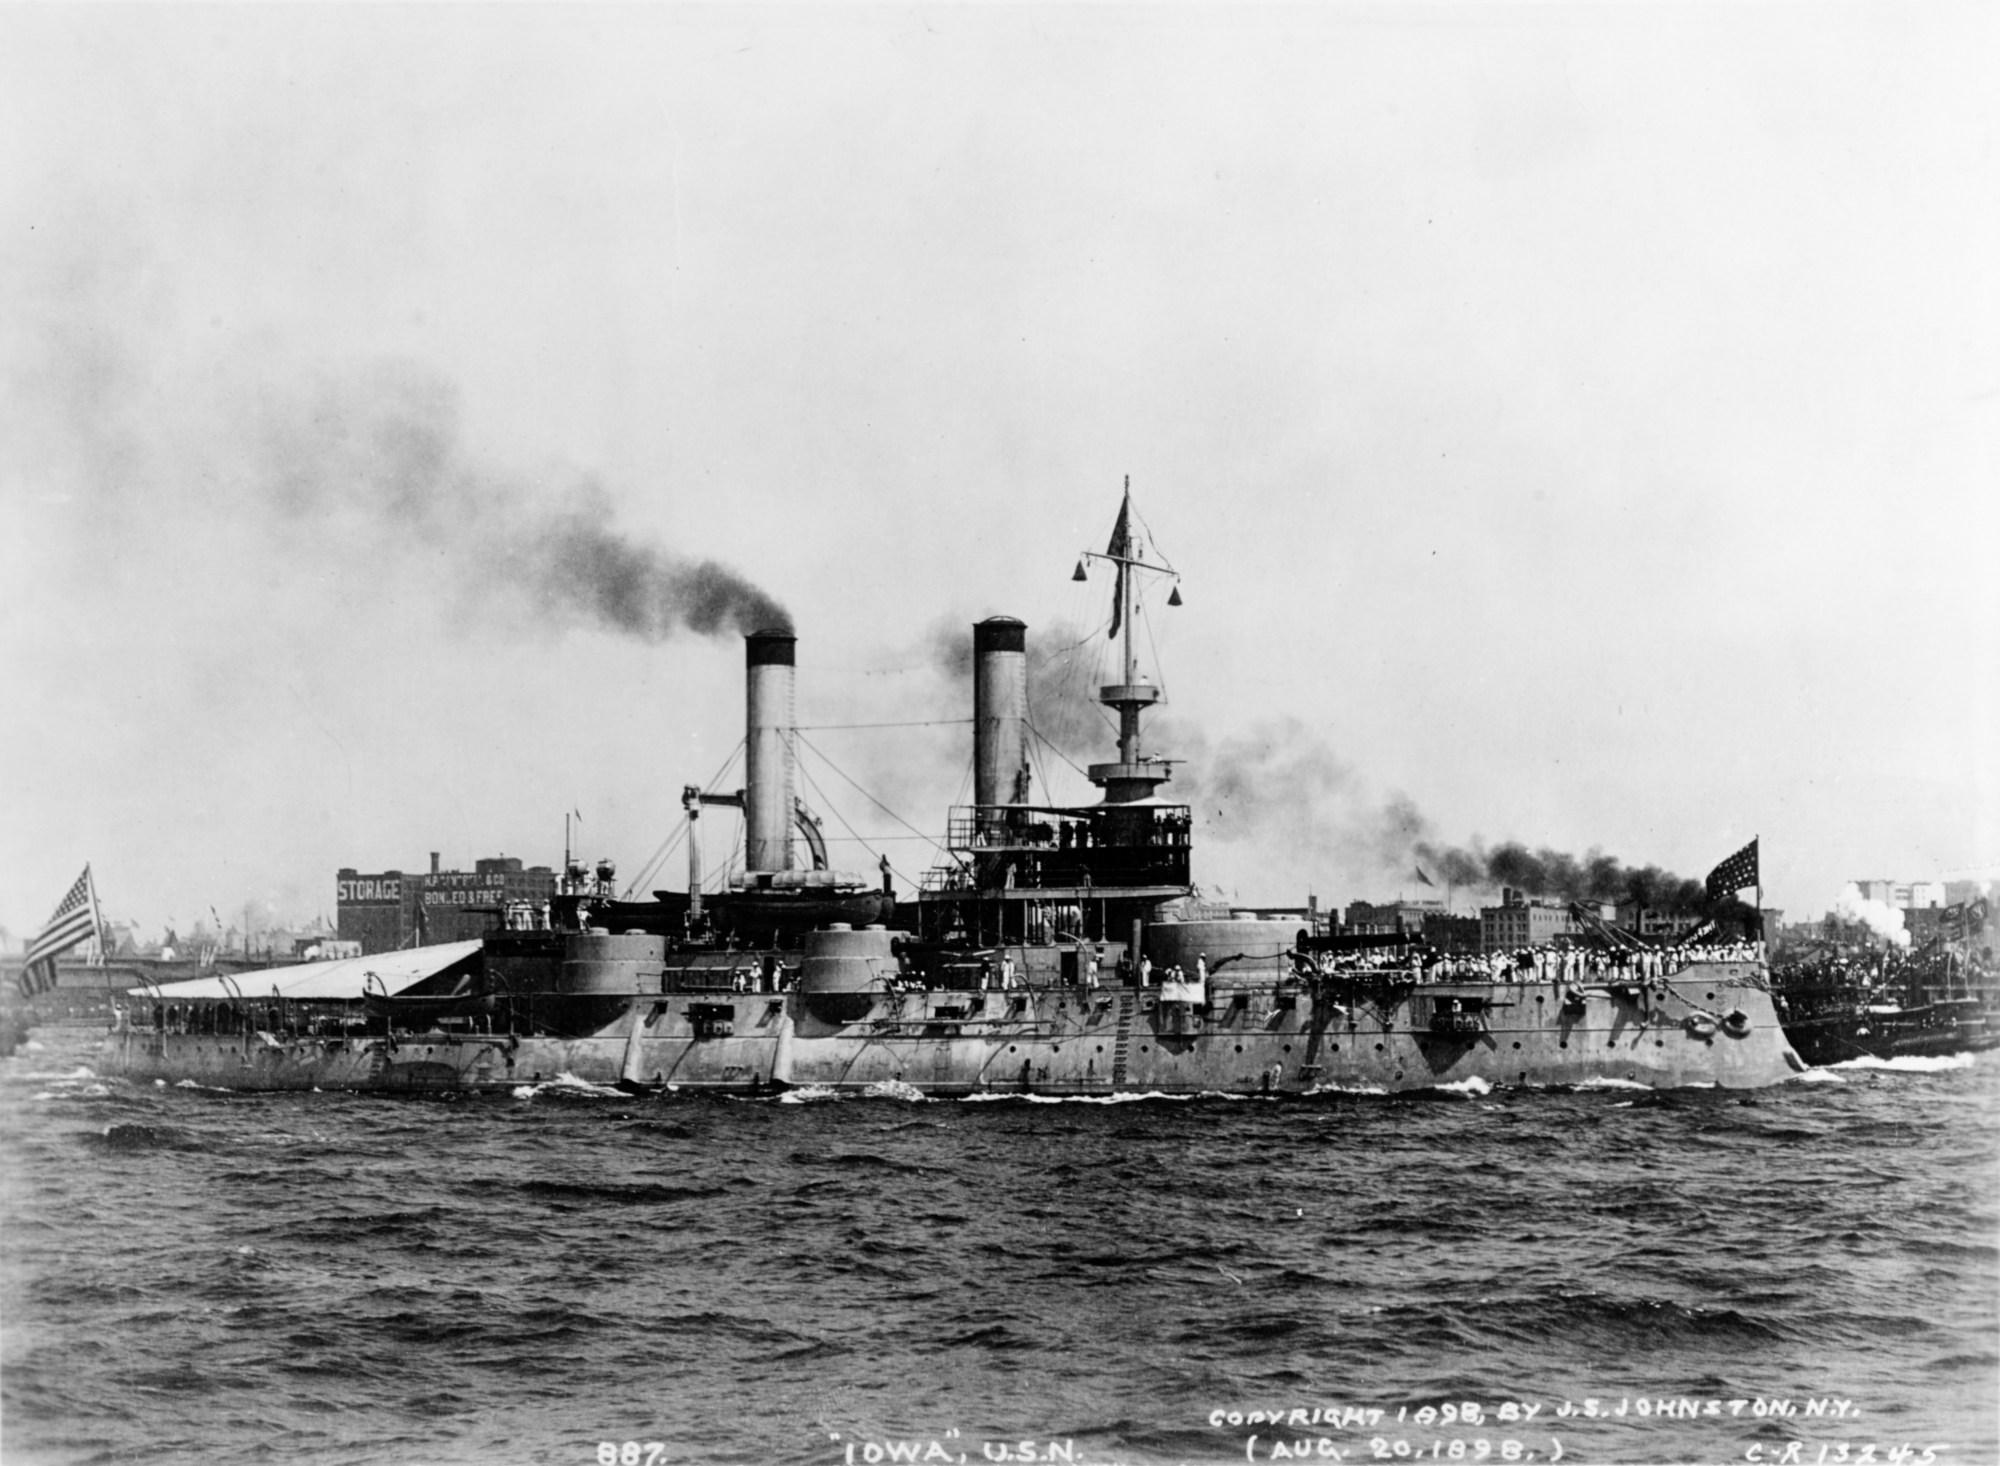 hight resolution of the newly built uss iowa bb 4 in new york harbor in 1898